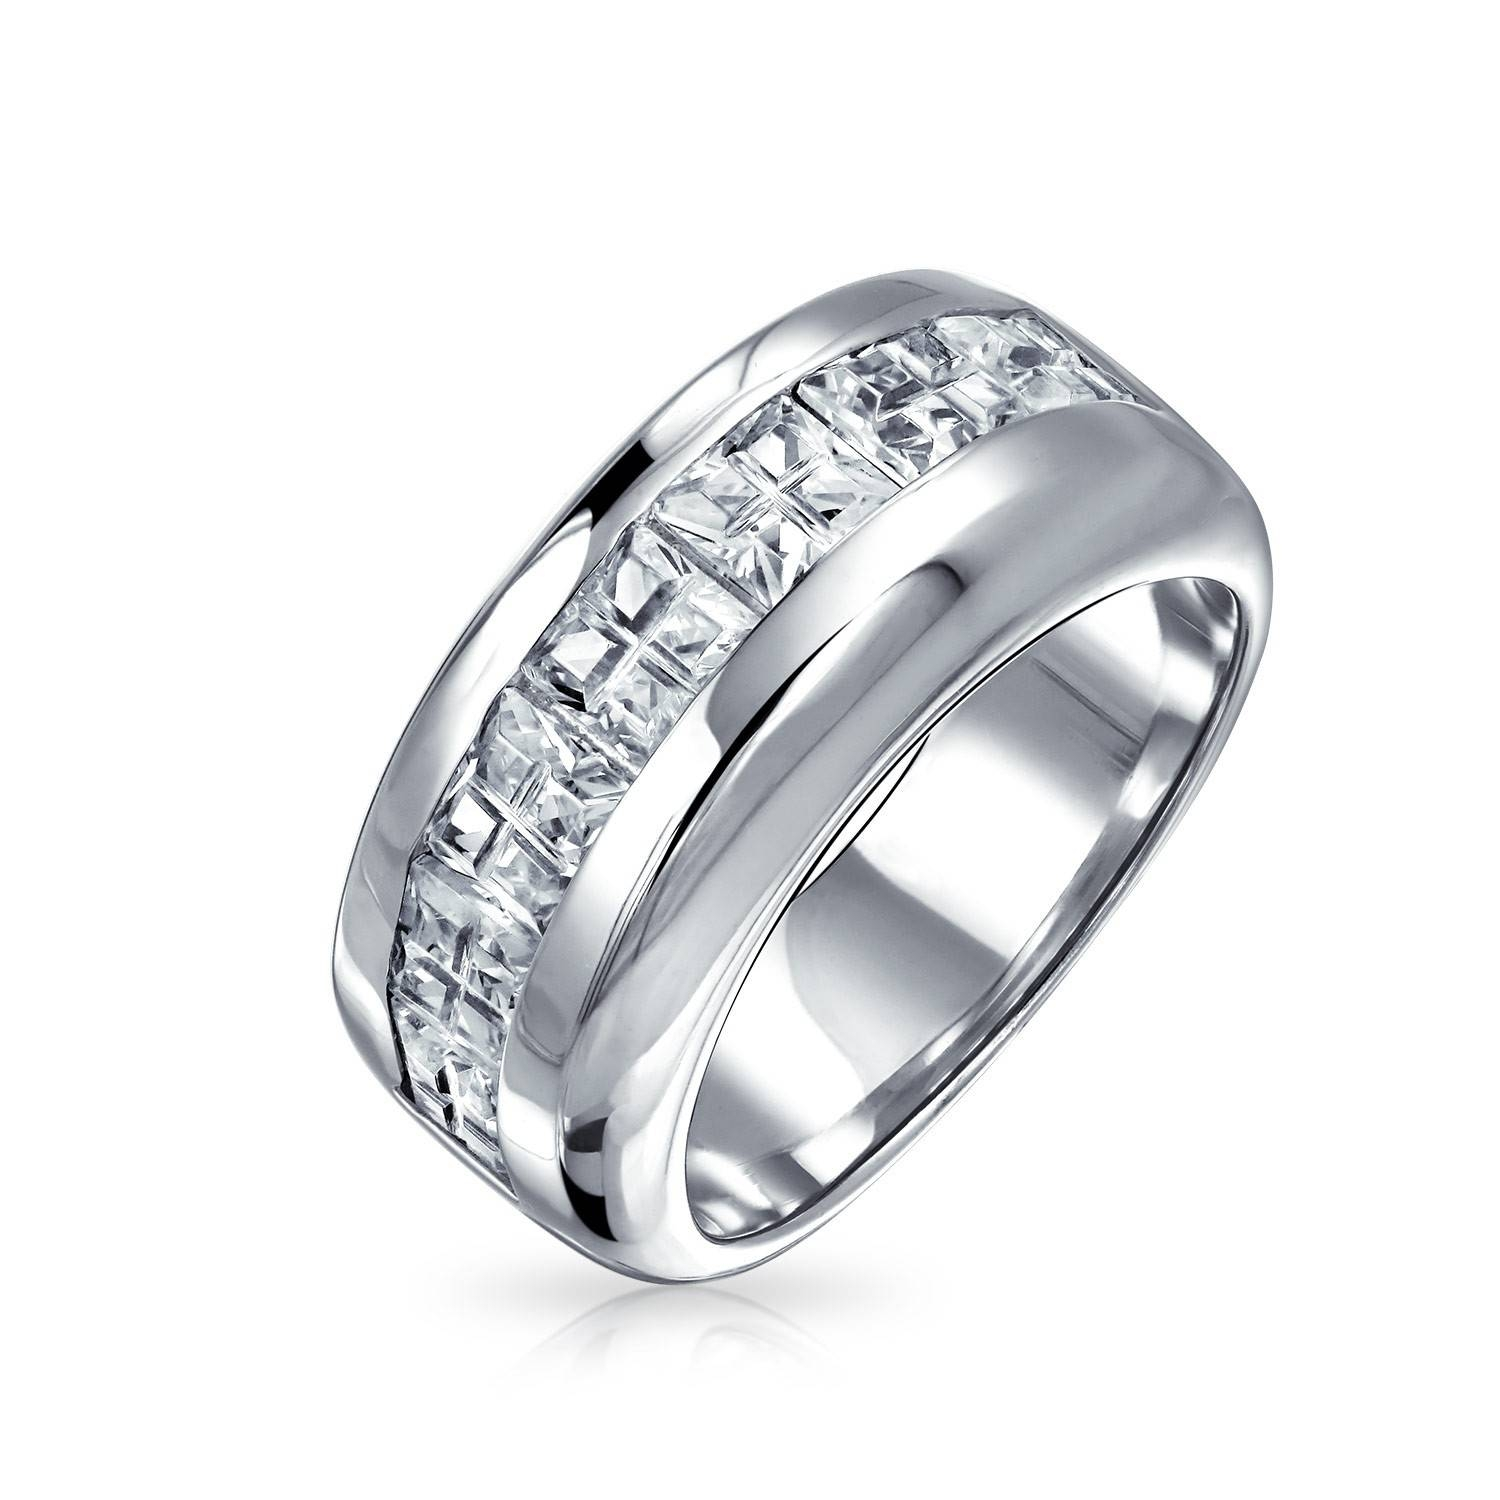 Sterling Silver Wedding Band Invisible Cut Cz Unisex Mens Ring With Regard To Silver Wedding Bands (View 11 of 15)